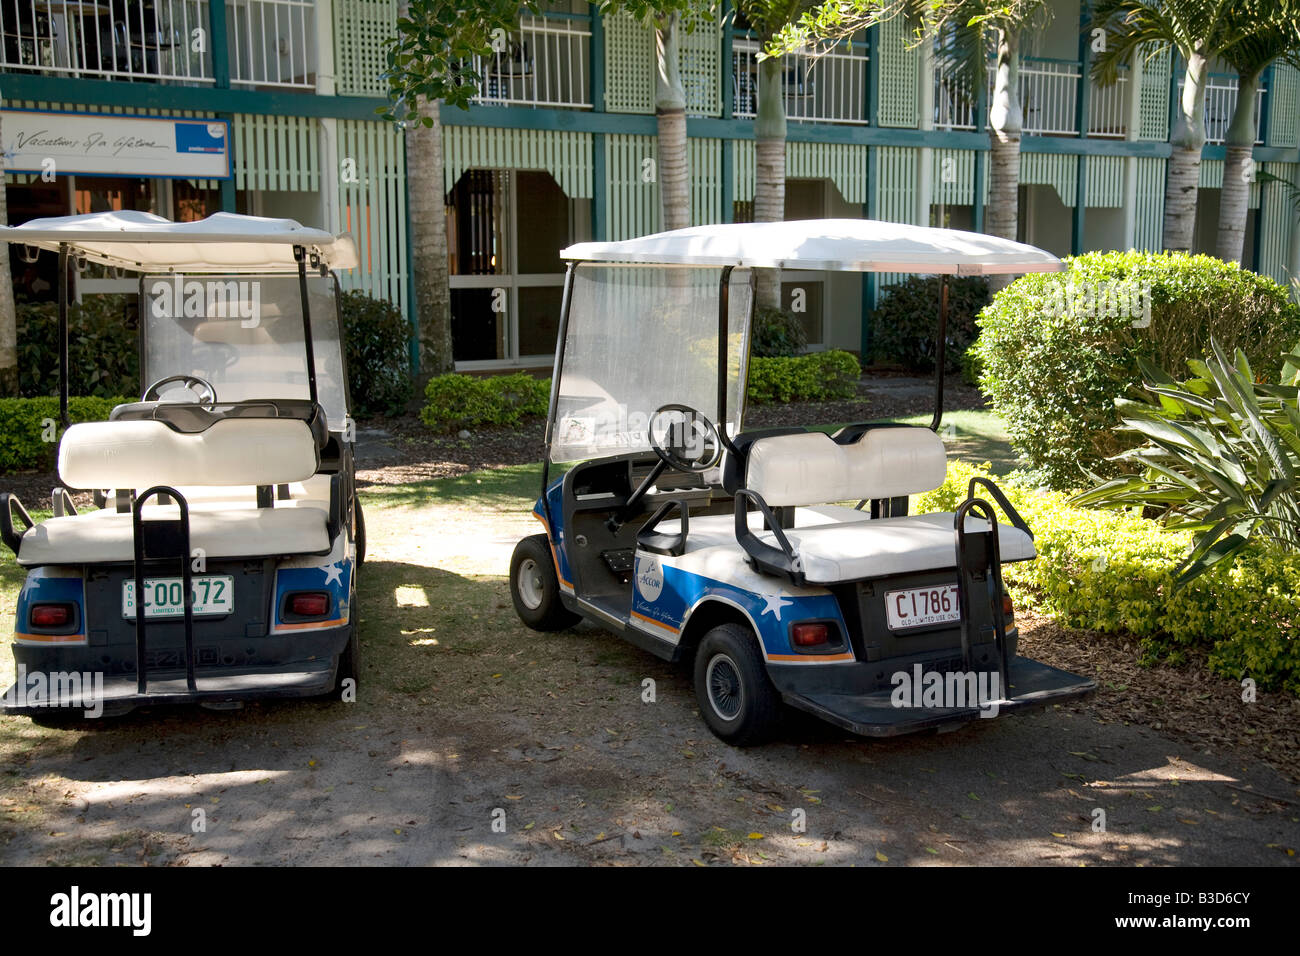 two golf style buggies parked at a resort complex in queensland,australia - Stock Image